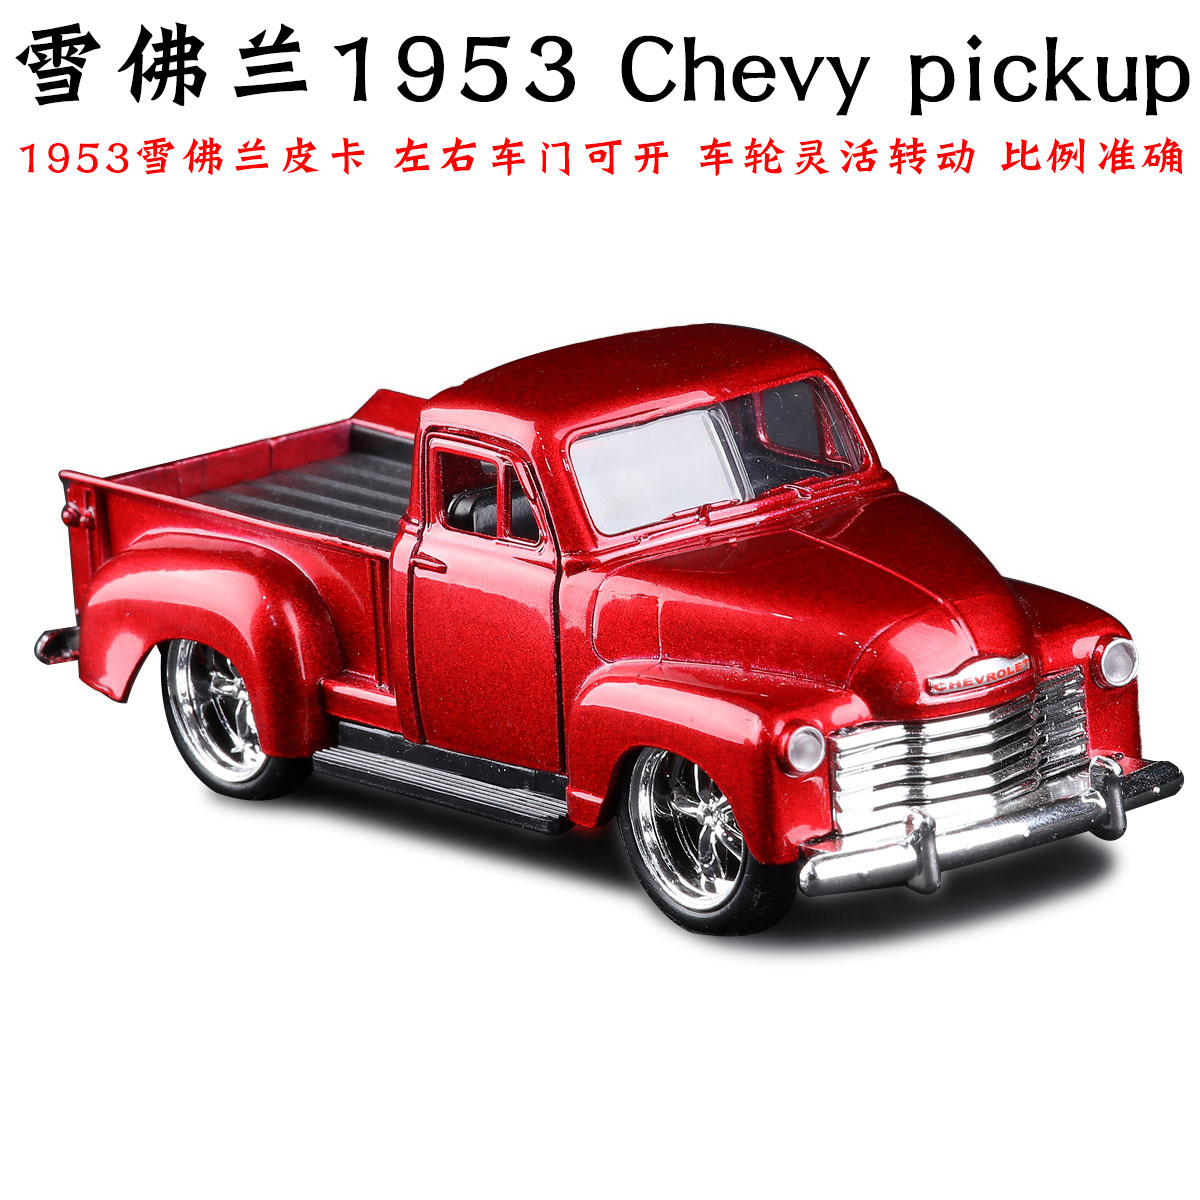 hight resolution of jada 1 32 scale high simulation alloy model car chevrolet chevy 1953 pickup quality toy models free shipping